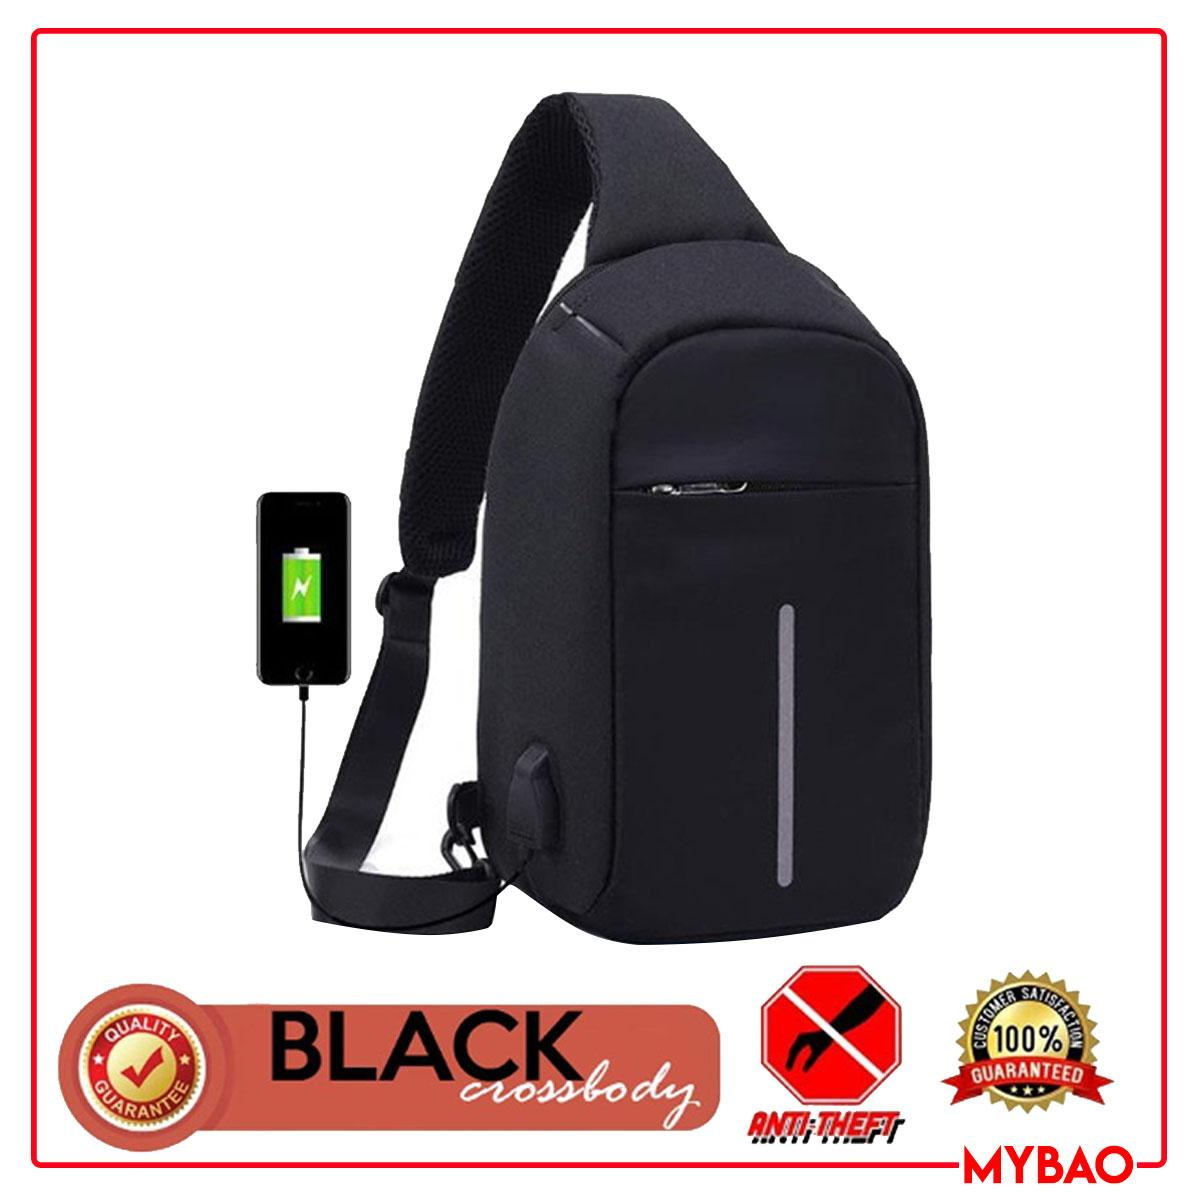 MYBAO  MEN ANTI-THEFT CHEST CROSS BODY BAG